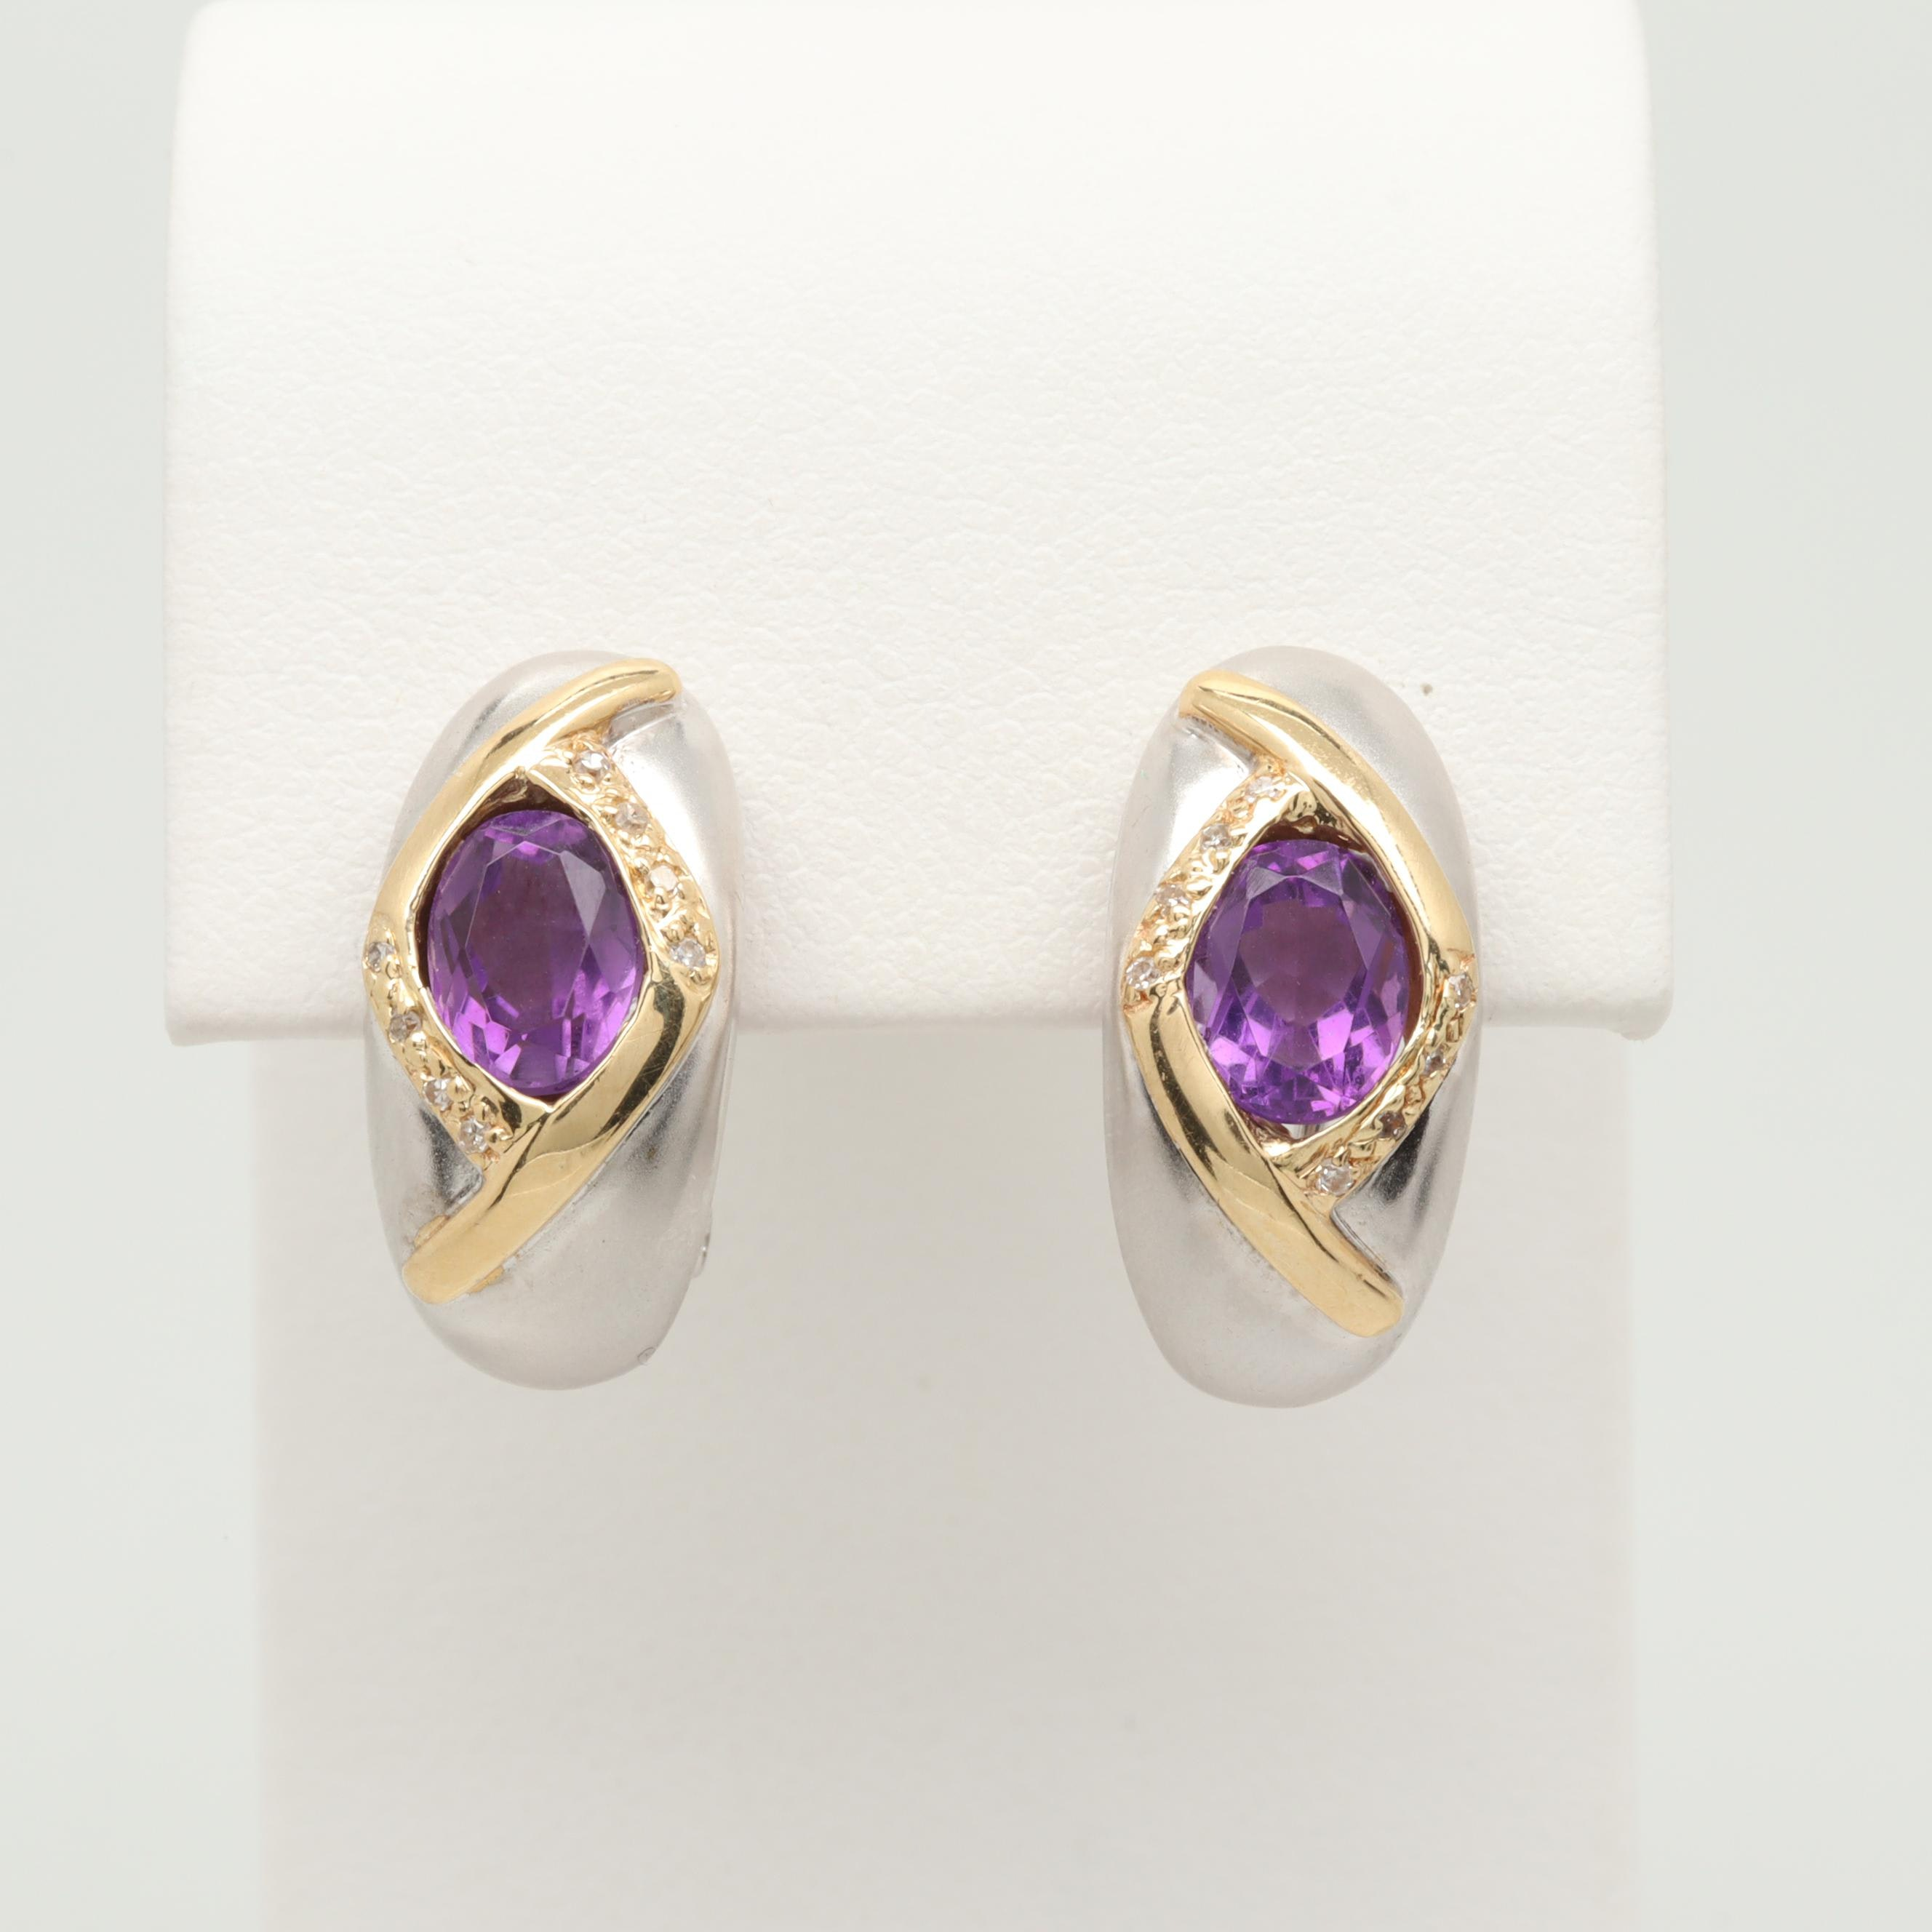 14K White and Yellow Gold Amethyst and Diamond Earrings